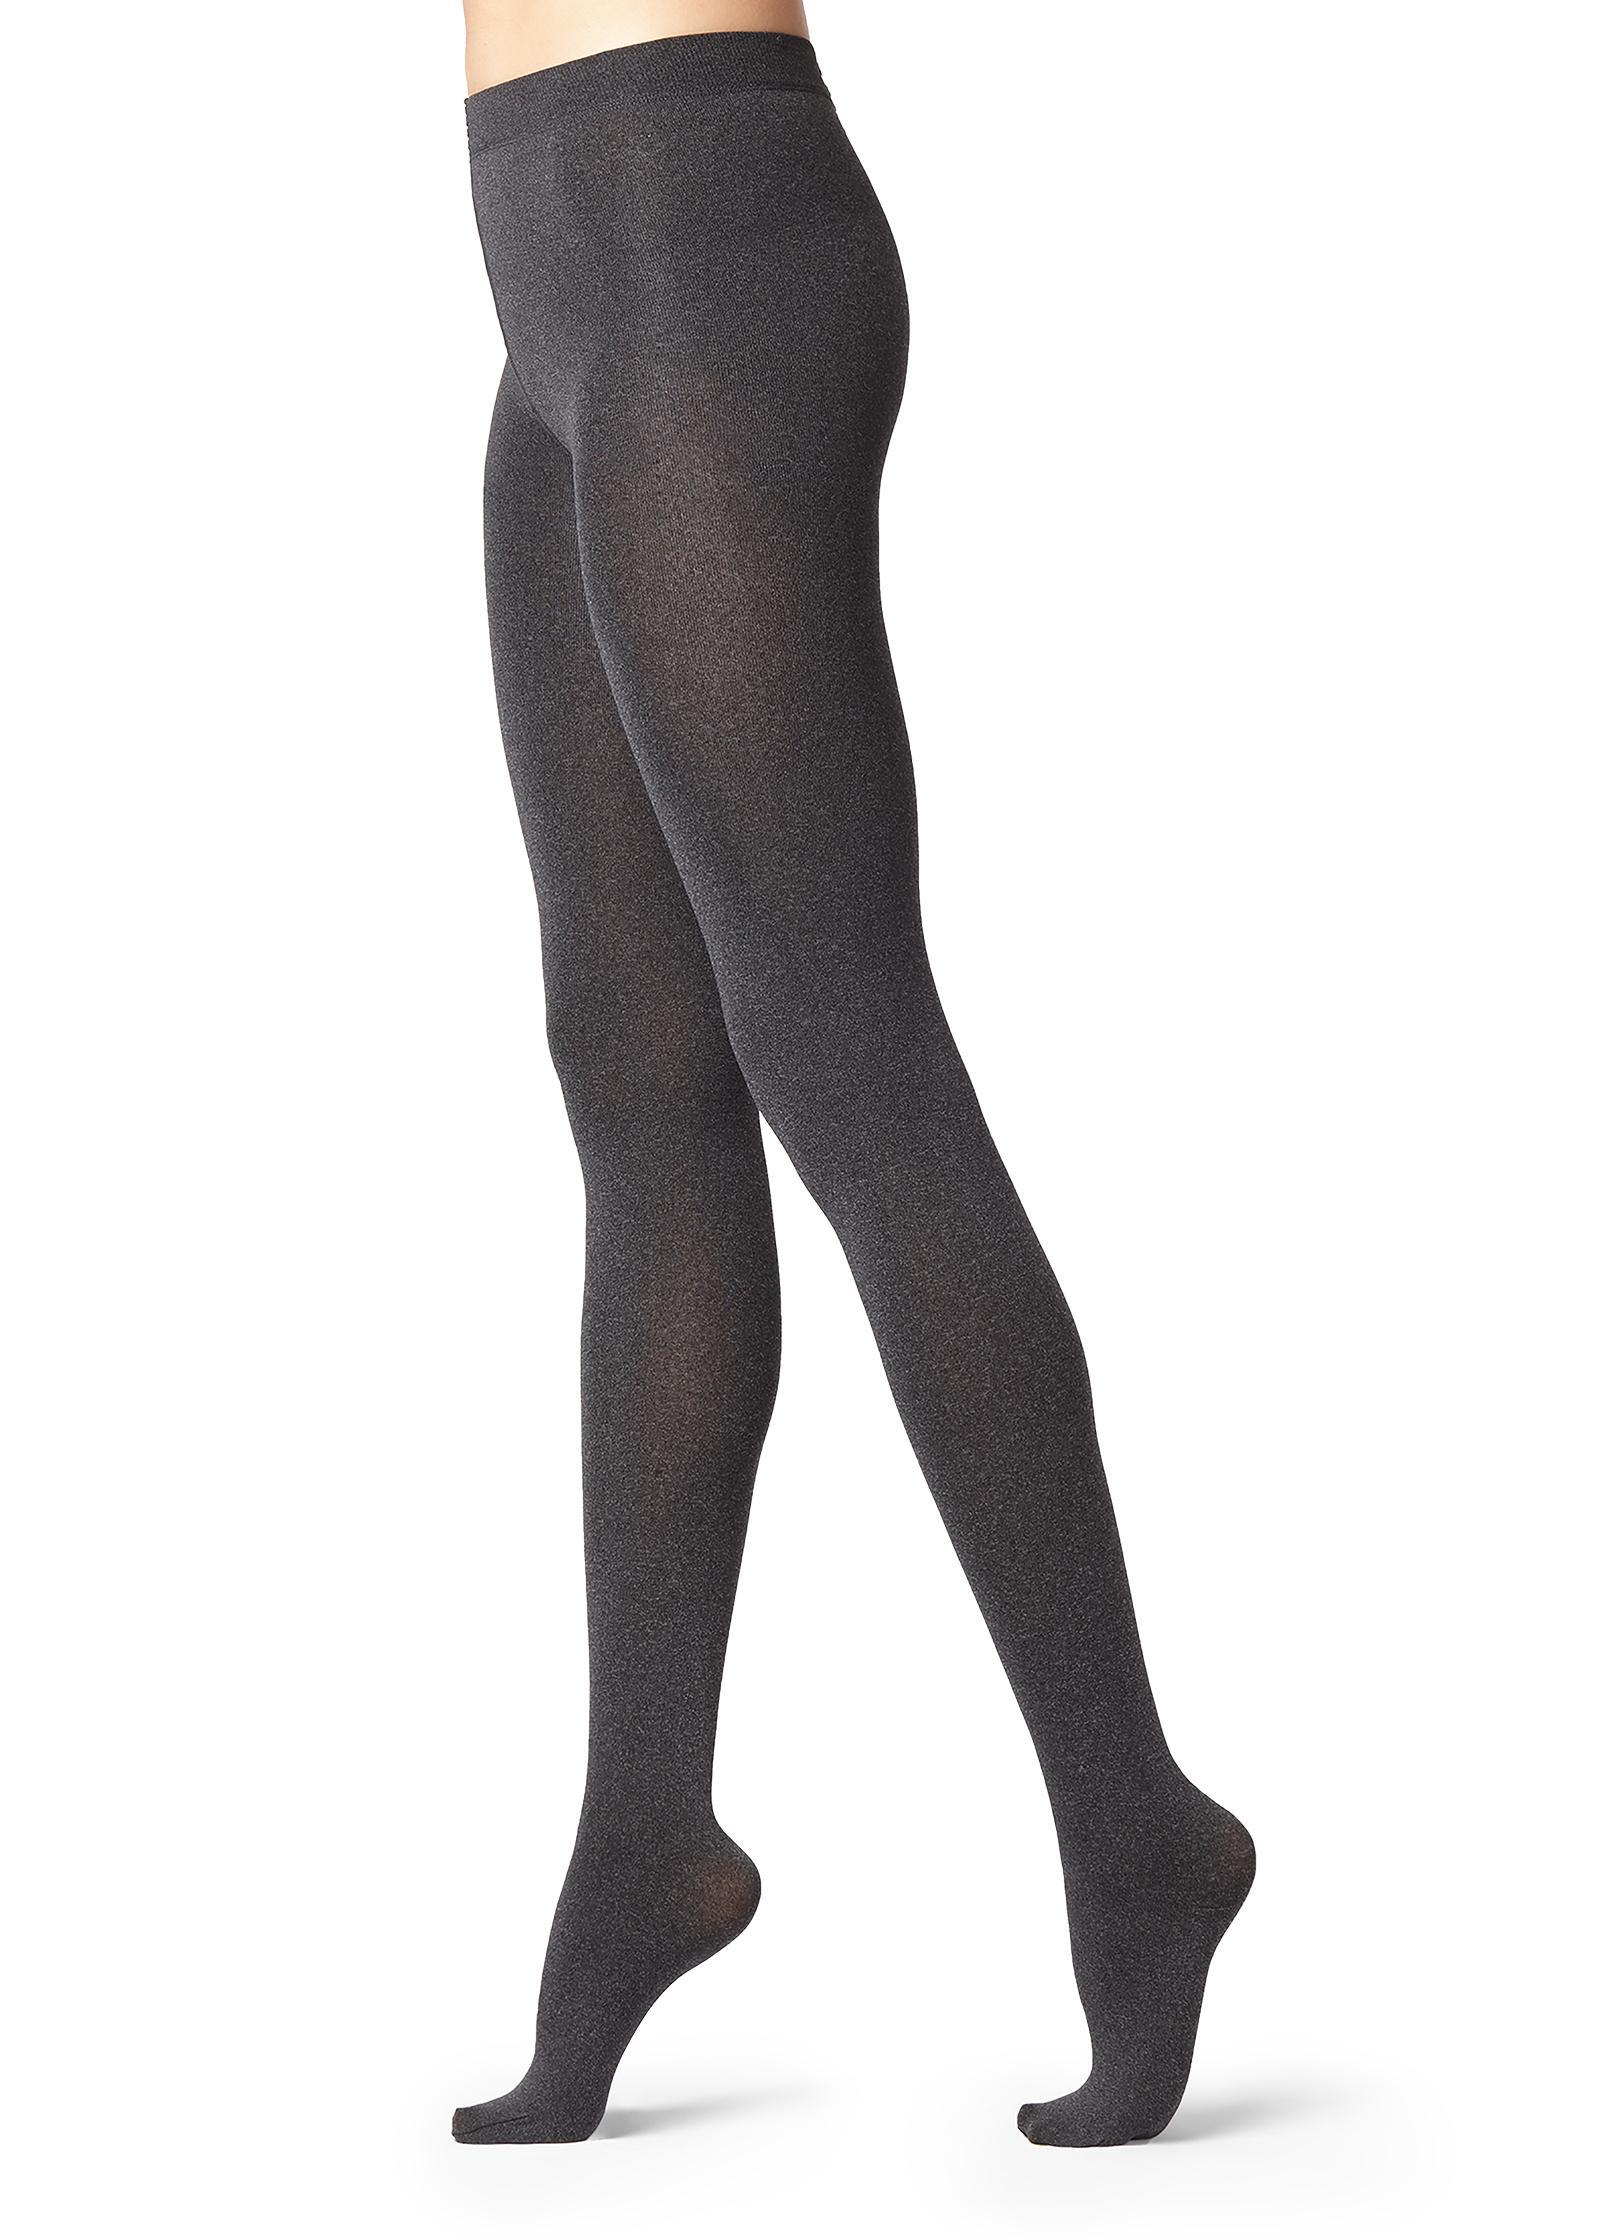 autentico numerosi in varietà fama mondiale Women's Gray Super Opaque Tights With Cashmere